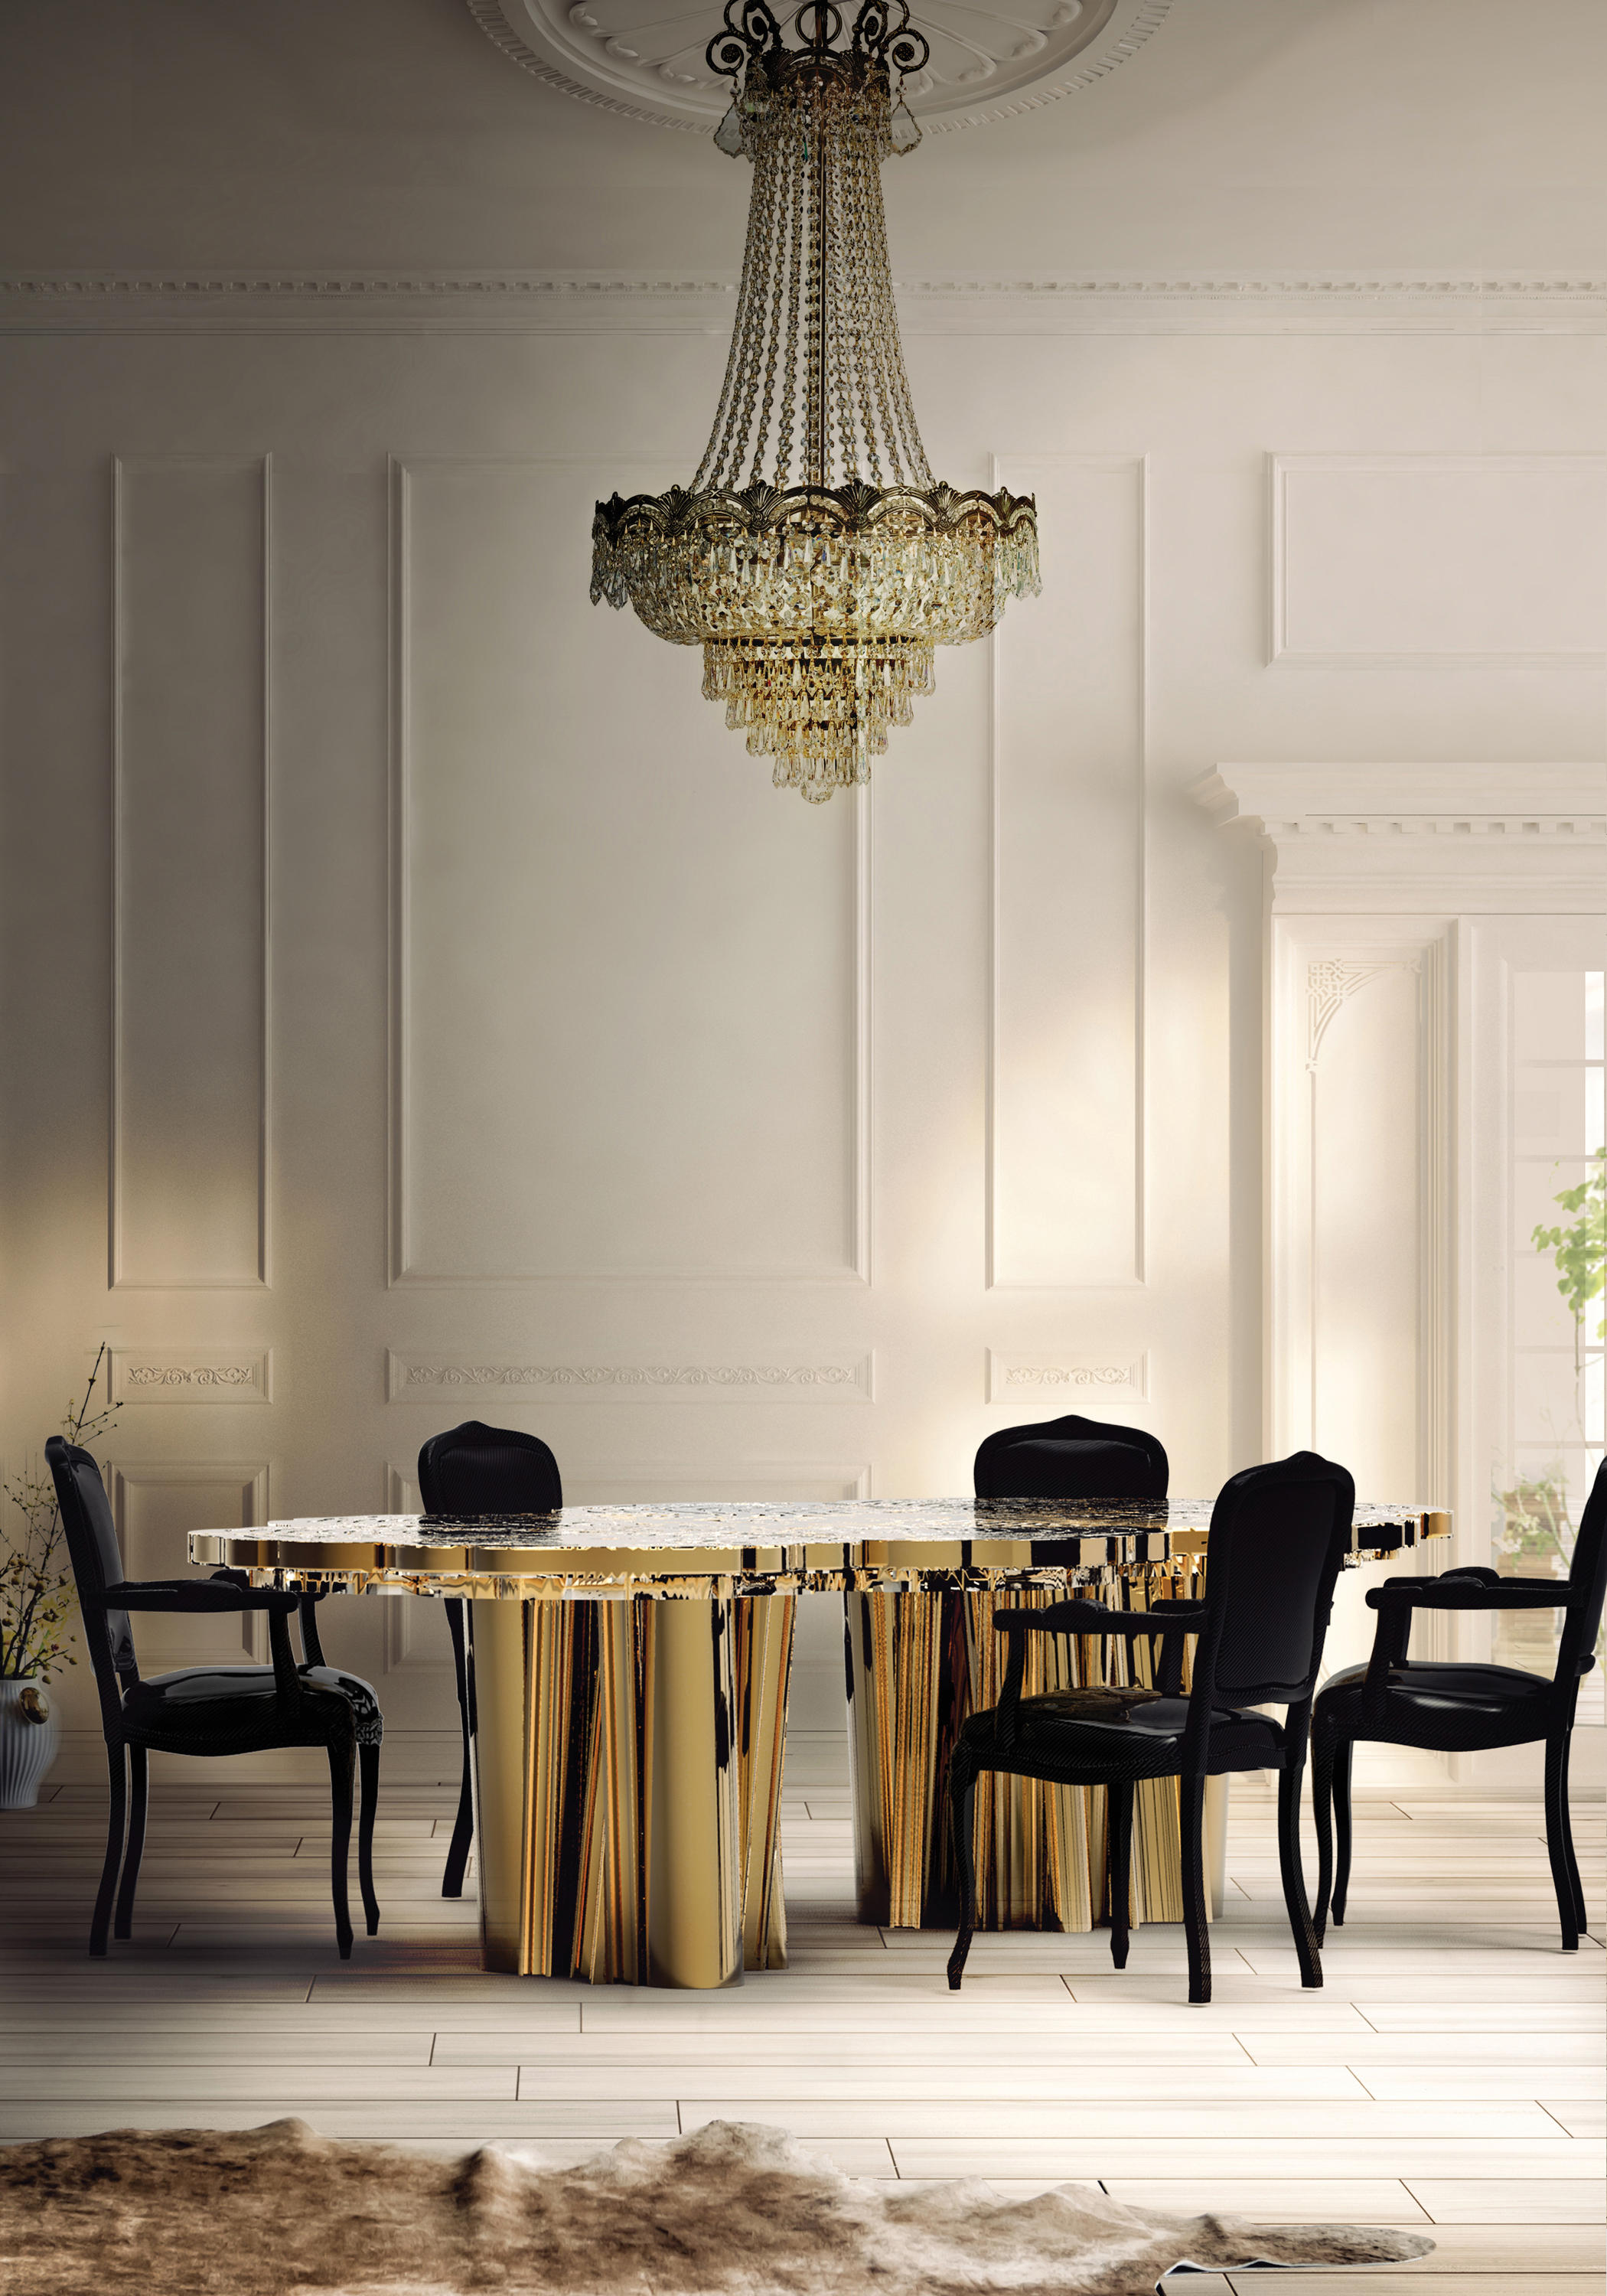 dining room dining room Astonishing Ideas Of How To Place Your Table In The Dining Room 1 Astonishing Ideas Of How To Place Your Table In The Dining Room 1